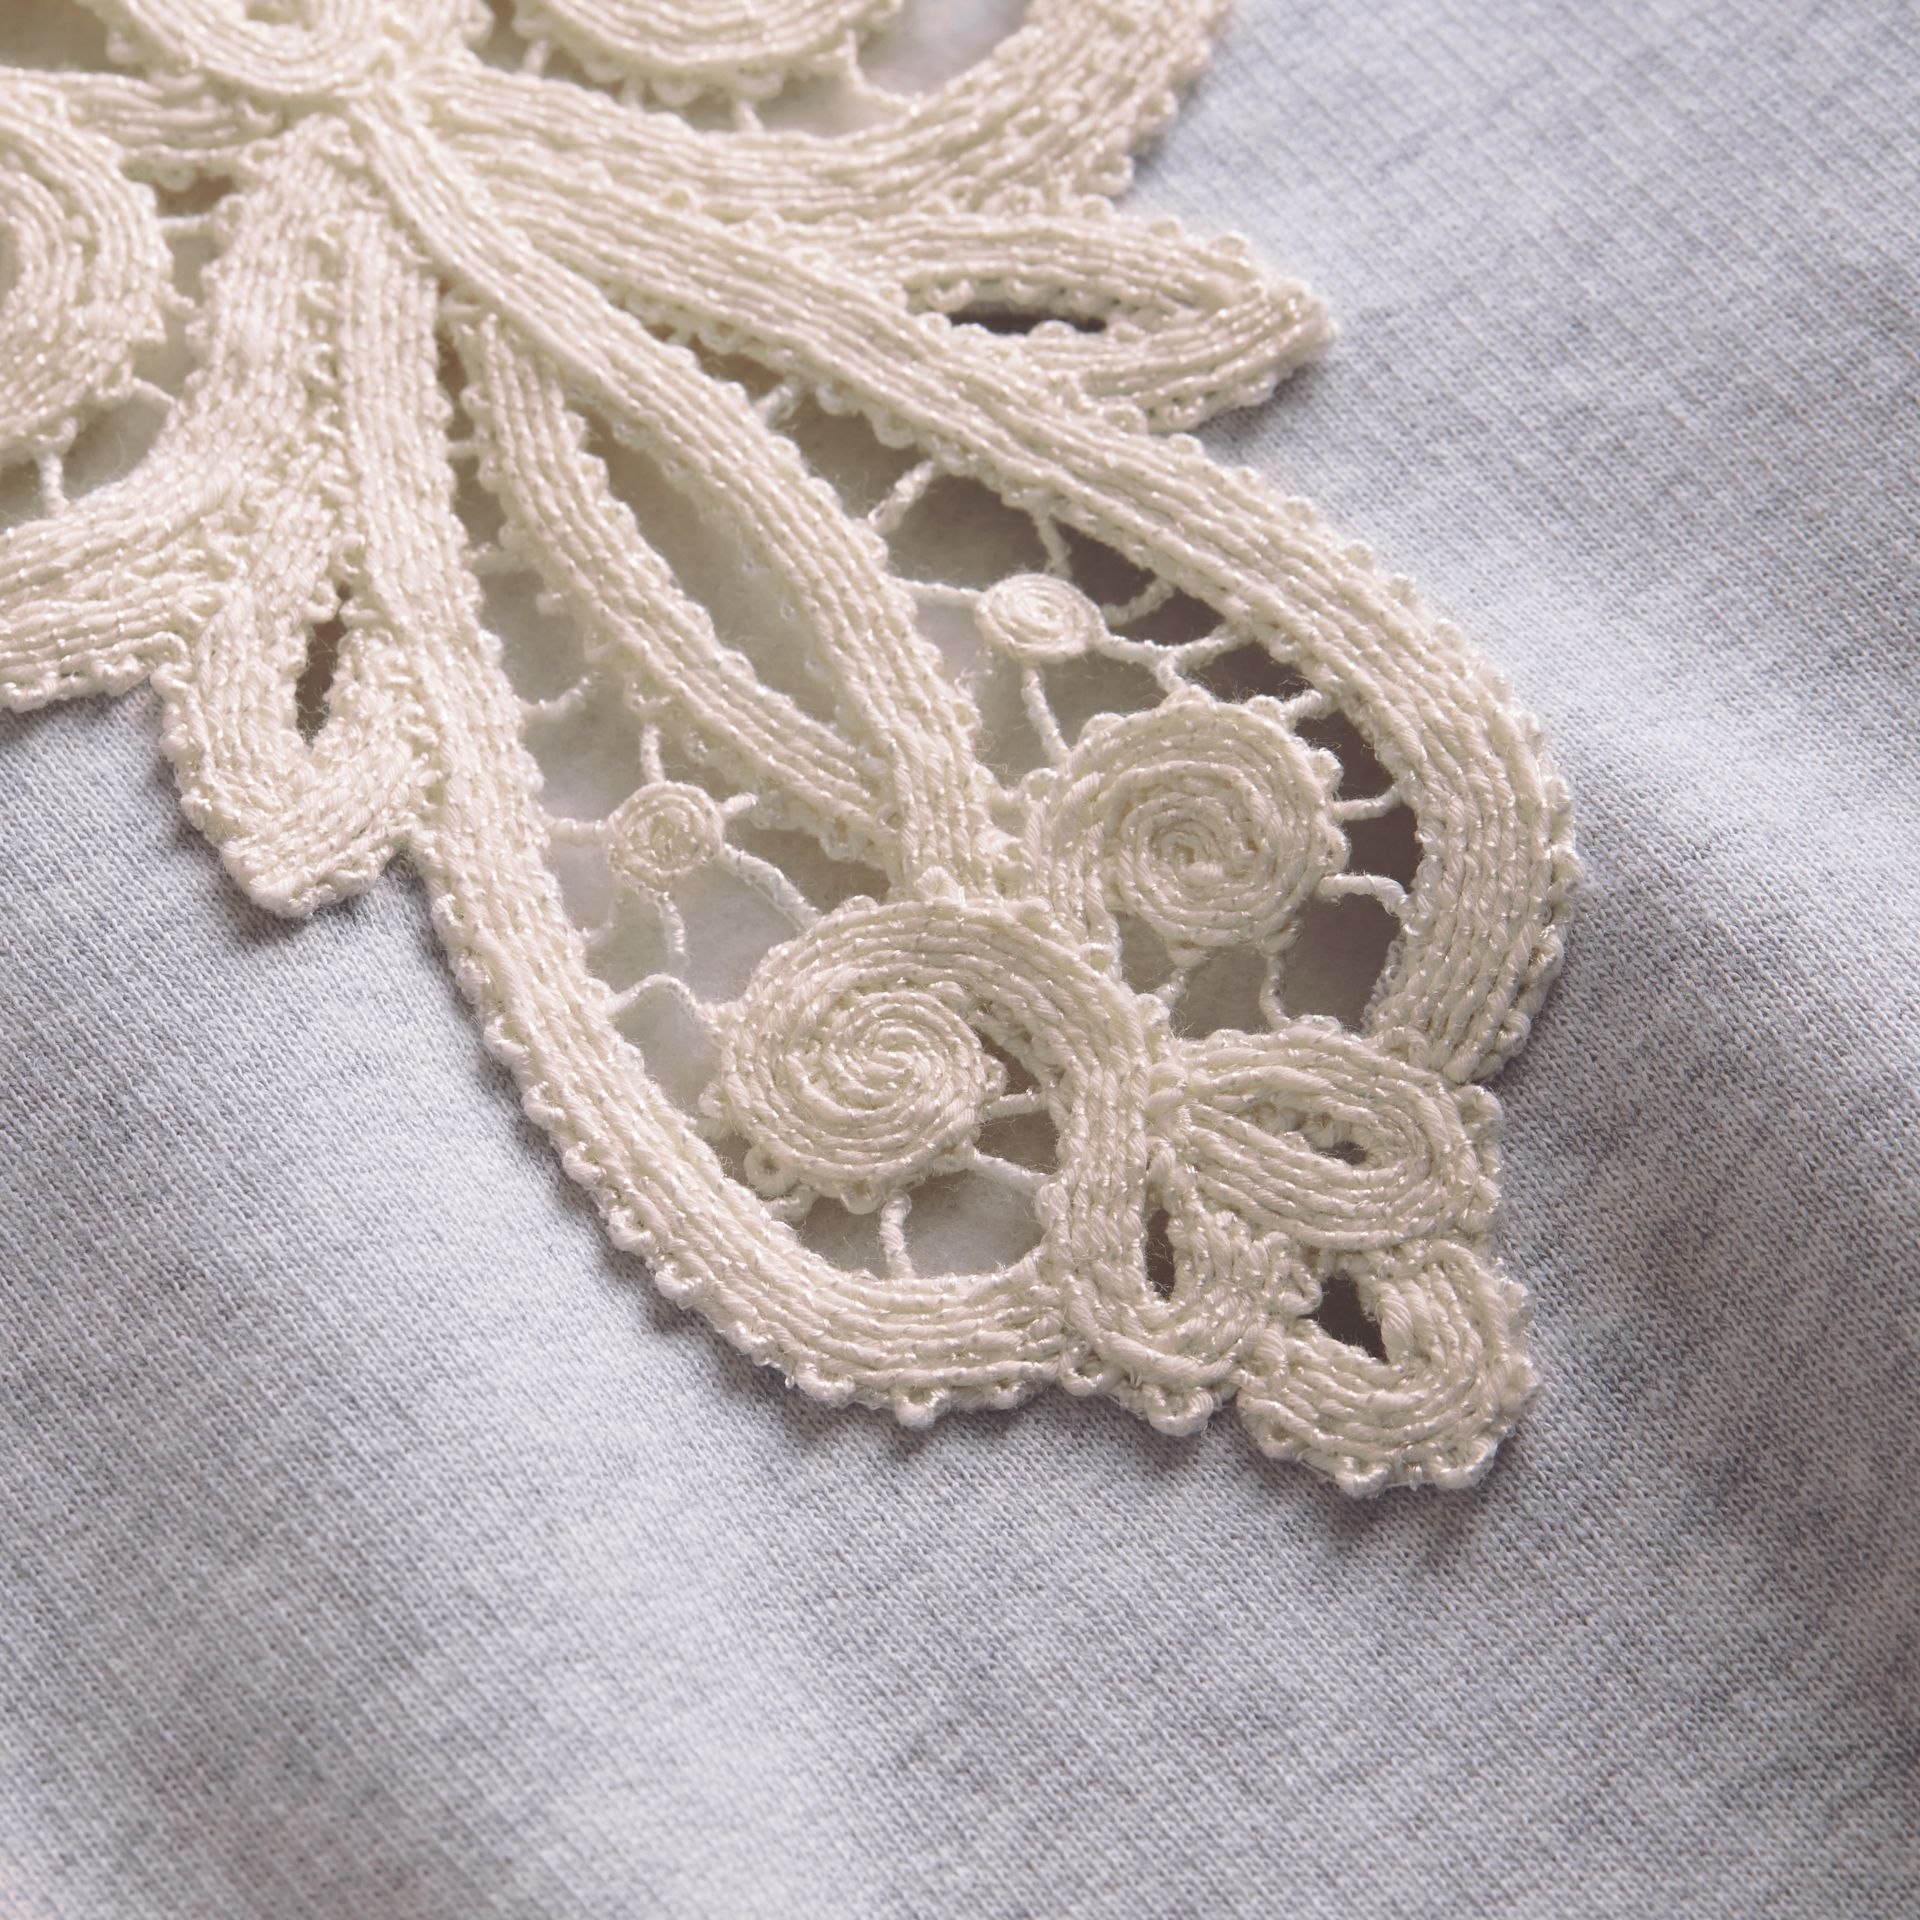 Unisex Lace Cutwork Sweatshirt in Light Grey Melange - Men | Burberry - gallery image 2